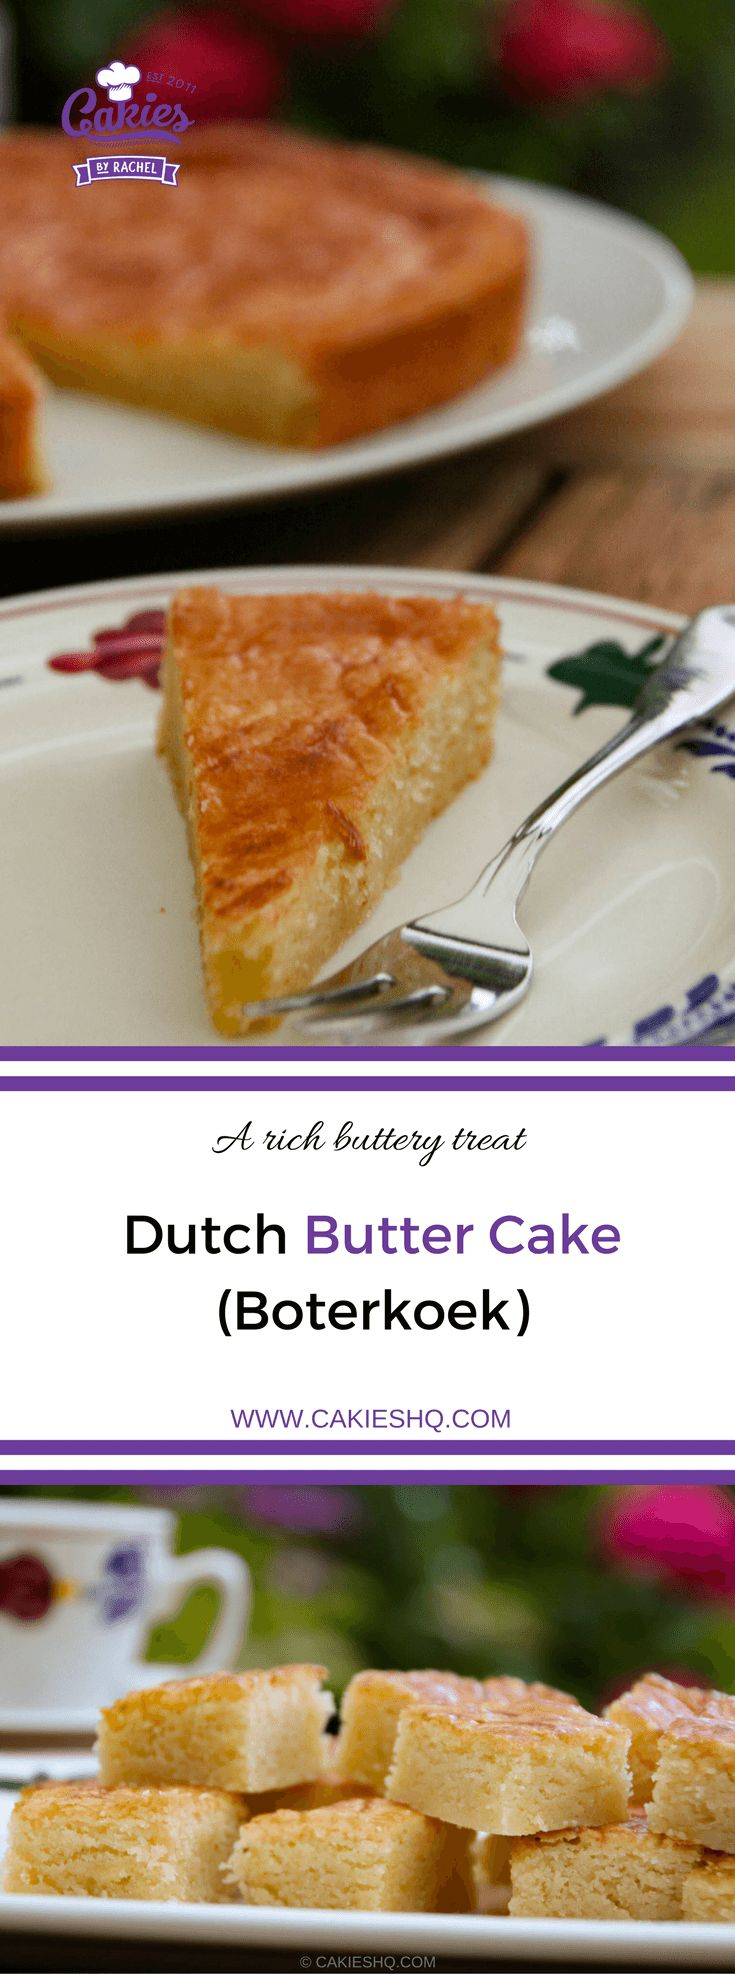 Dutch butter cake (boterkoek) is a traditional moist, flat cake with crispy edges. Butter cake (boterkoek) is a delicious Dutch treat to indulge in. #recipe #dutchrecipe